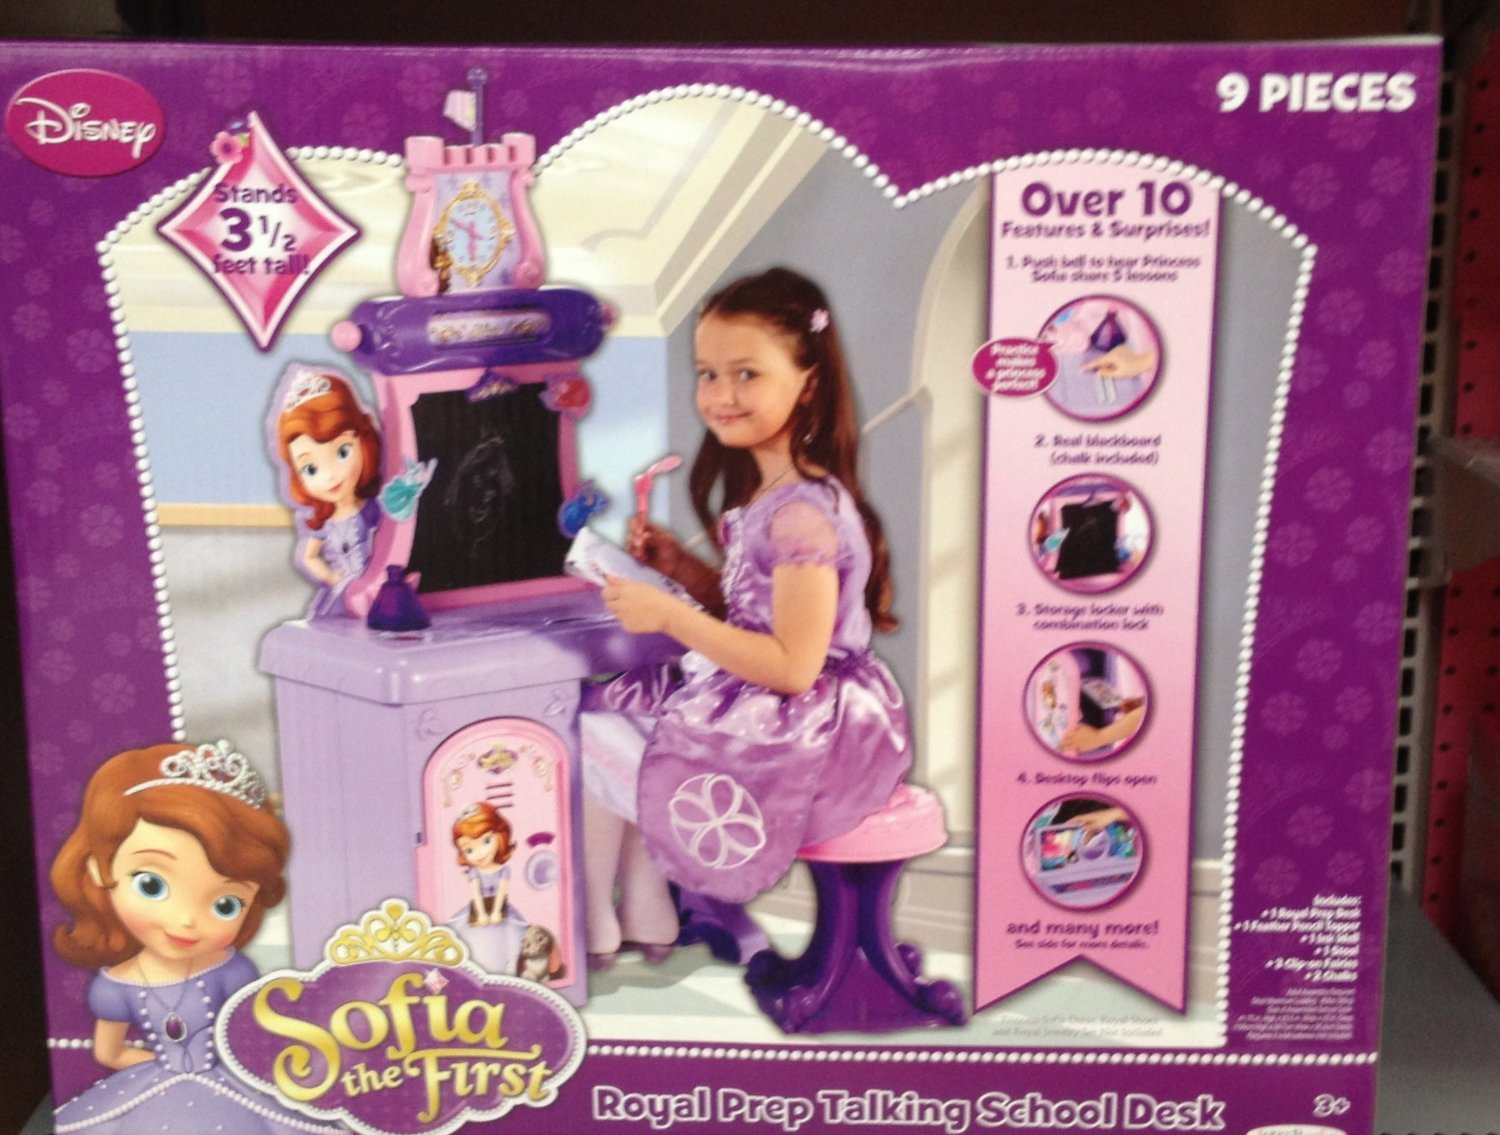 Sofia The First Royal Prep Talking School Desk (Bring playtime to life for your child with the Disney Princess Sofia the First Royal Prep Talking School Desk.)(Manufacturer recommended age: 3 years and up)